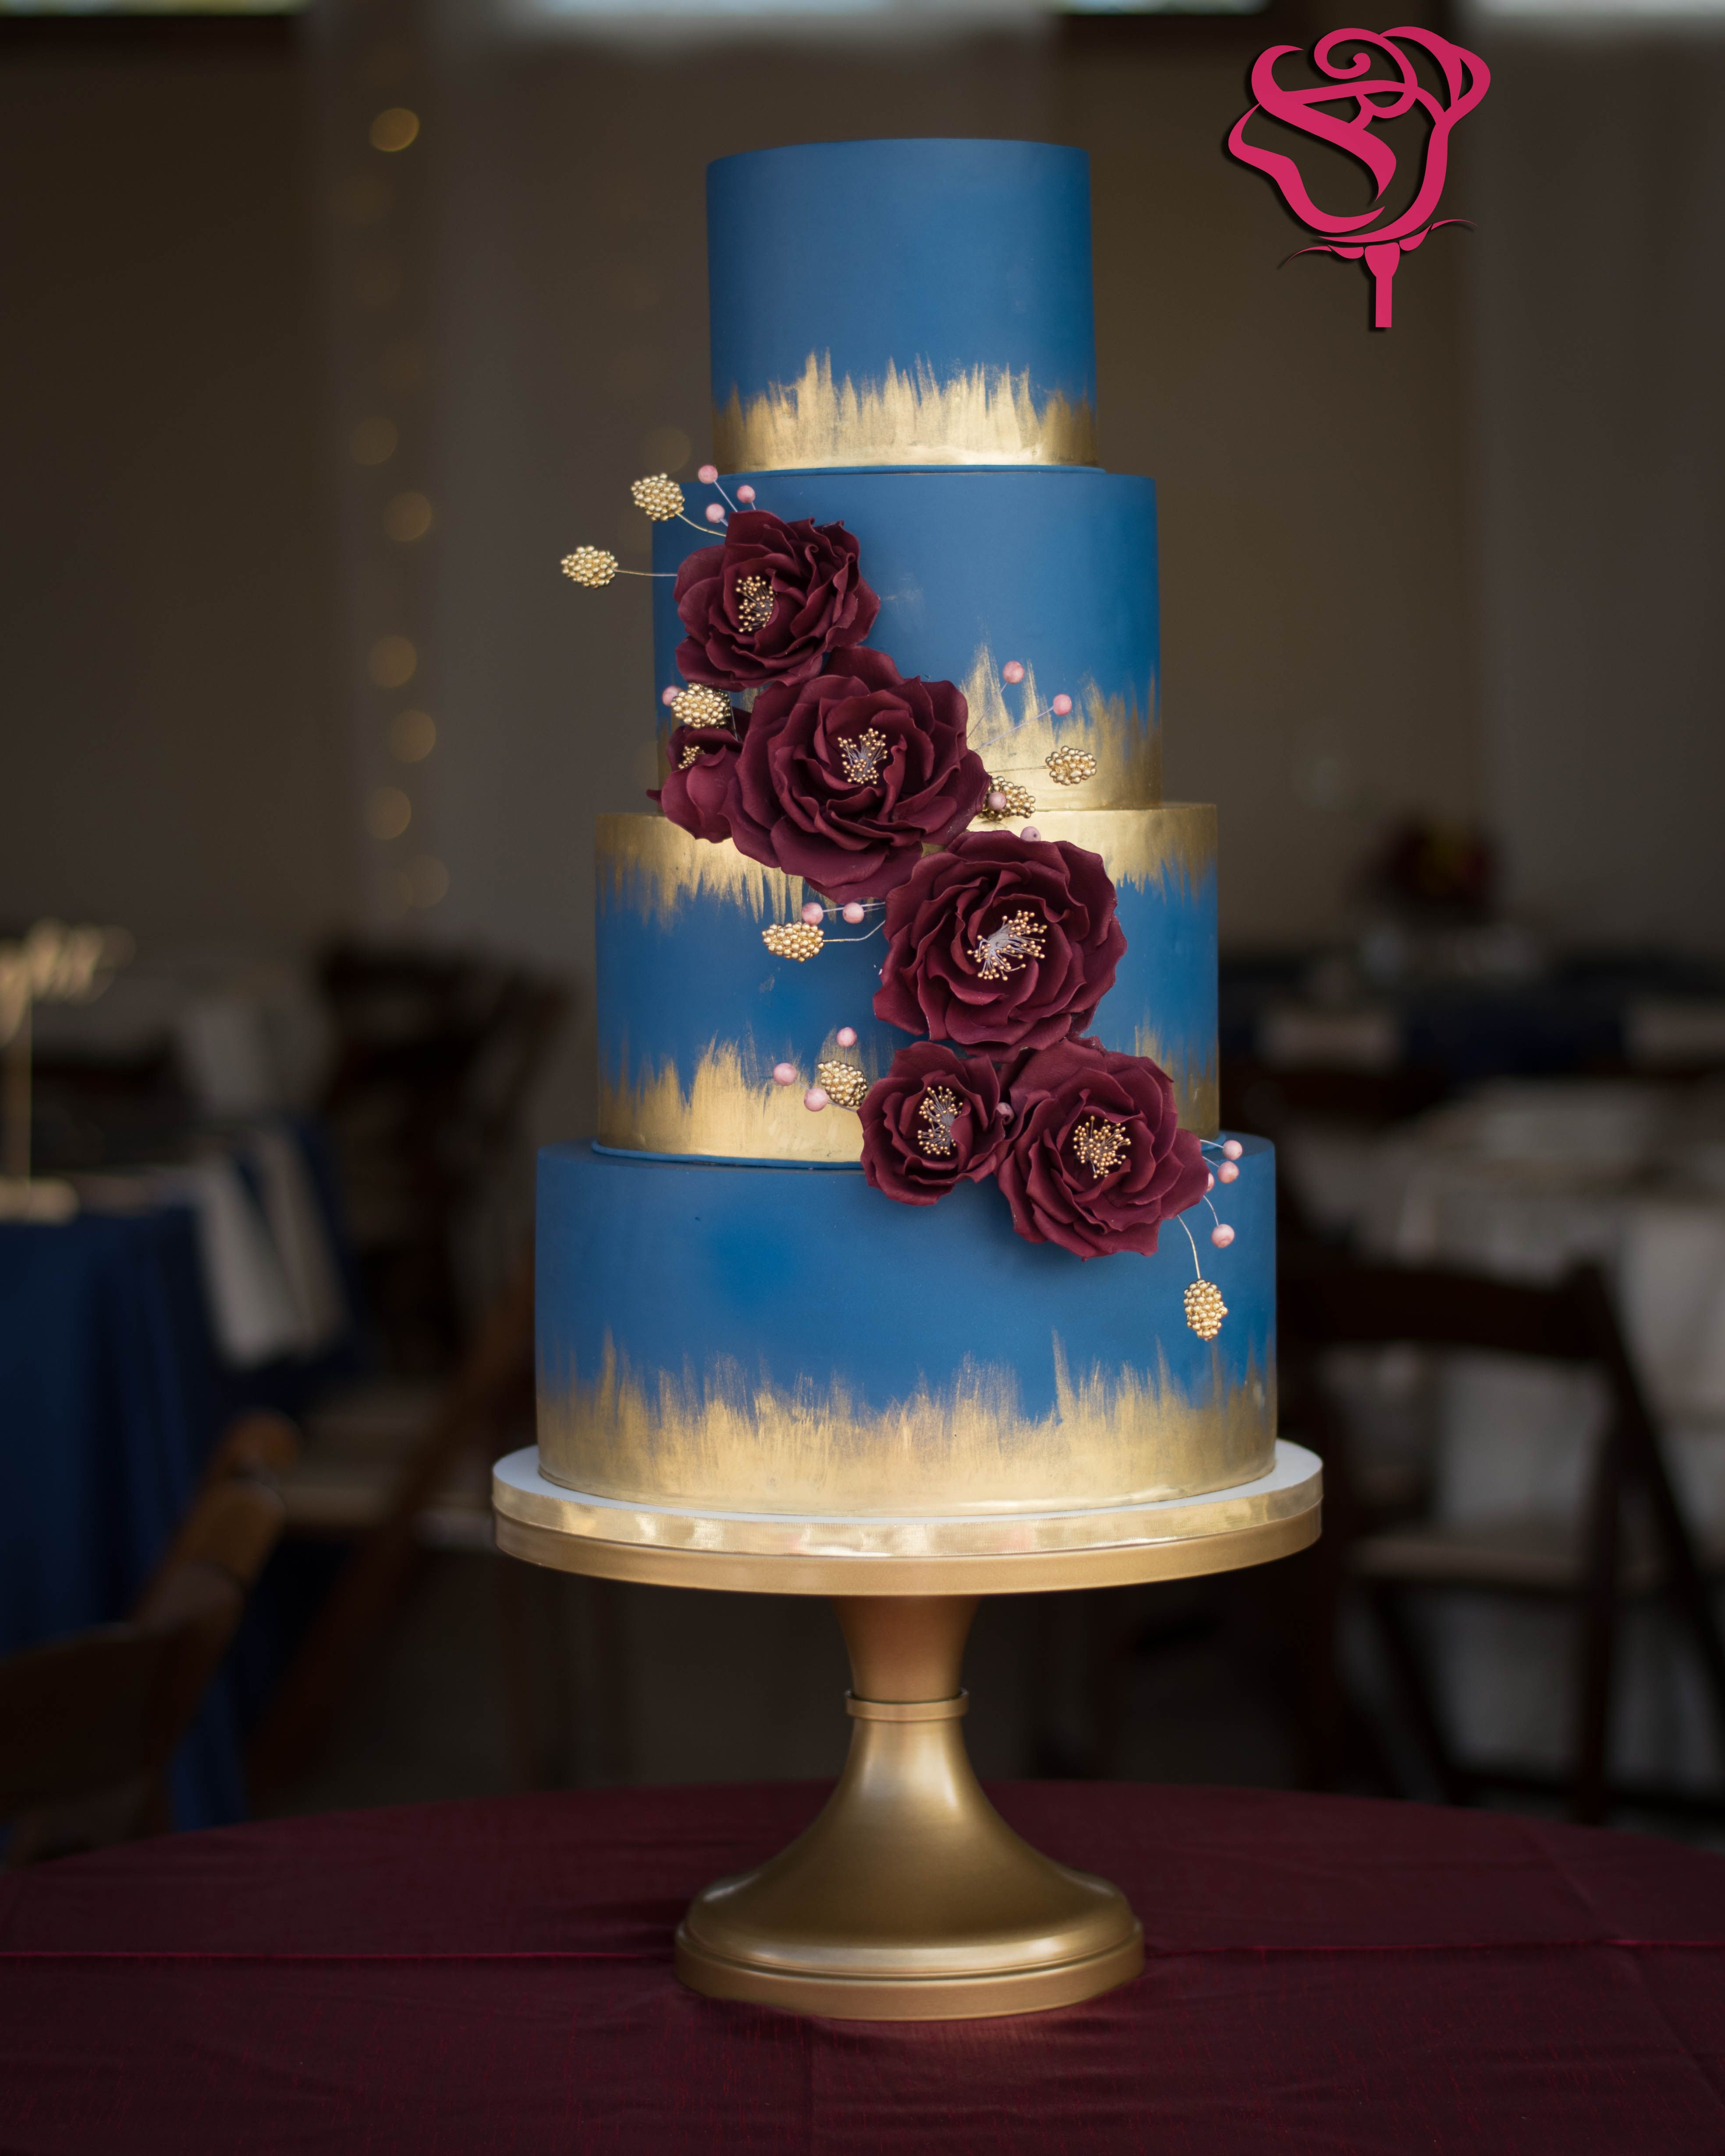 Navy Blue and Burgundy wine wedding cake with gold details